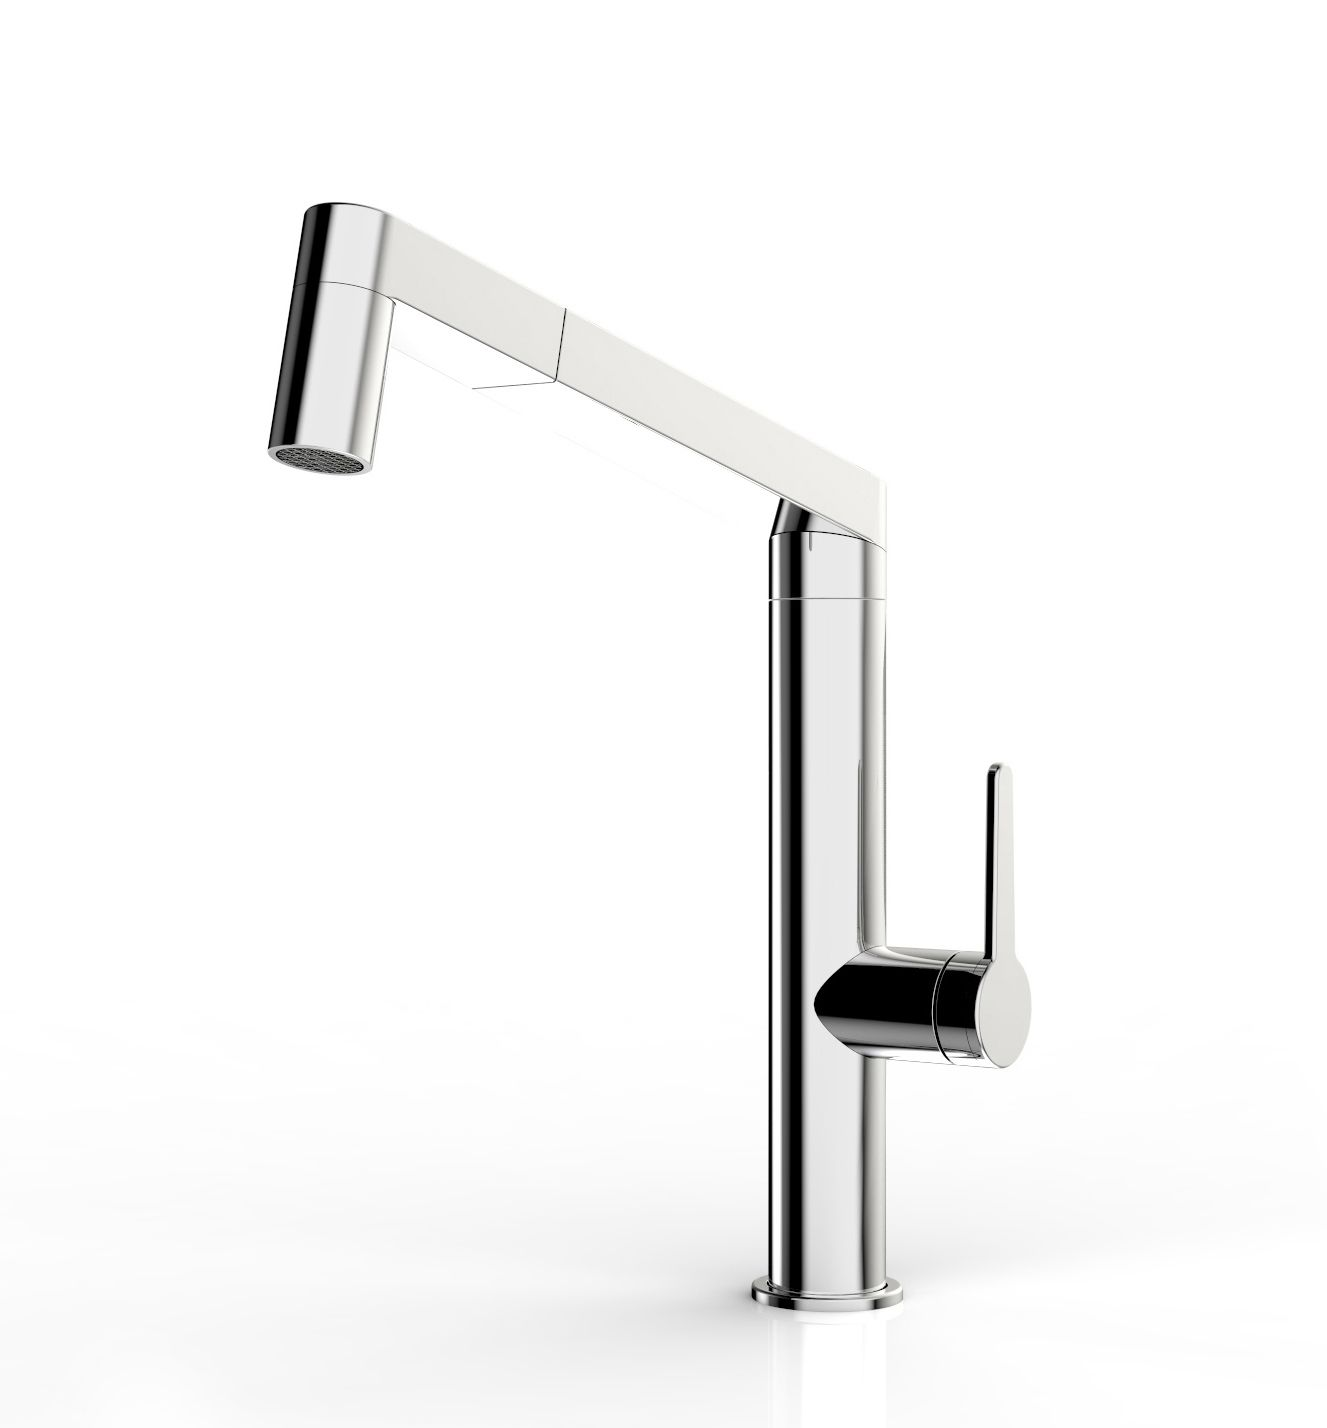 Panera S _ Stainless Steel Kitchen Faucet For Blanco Steel Art